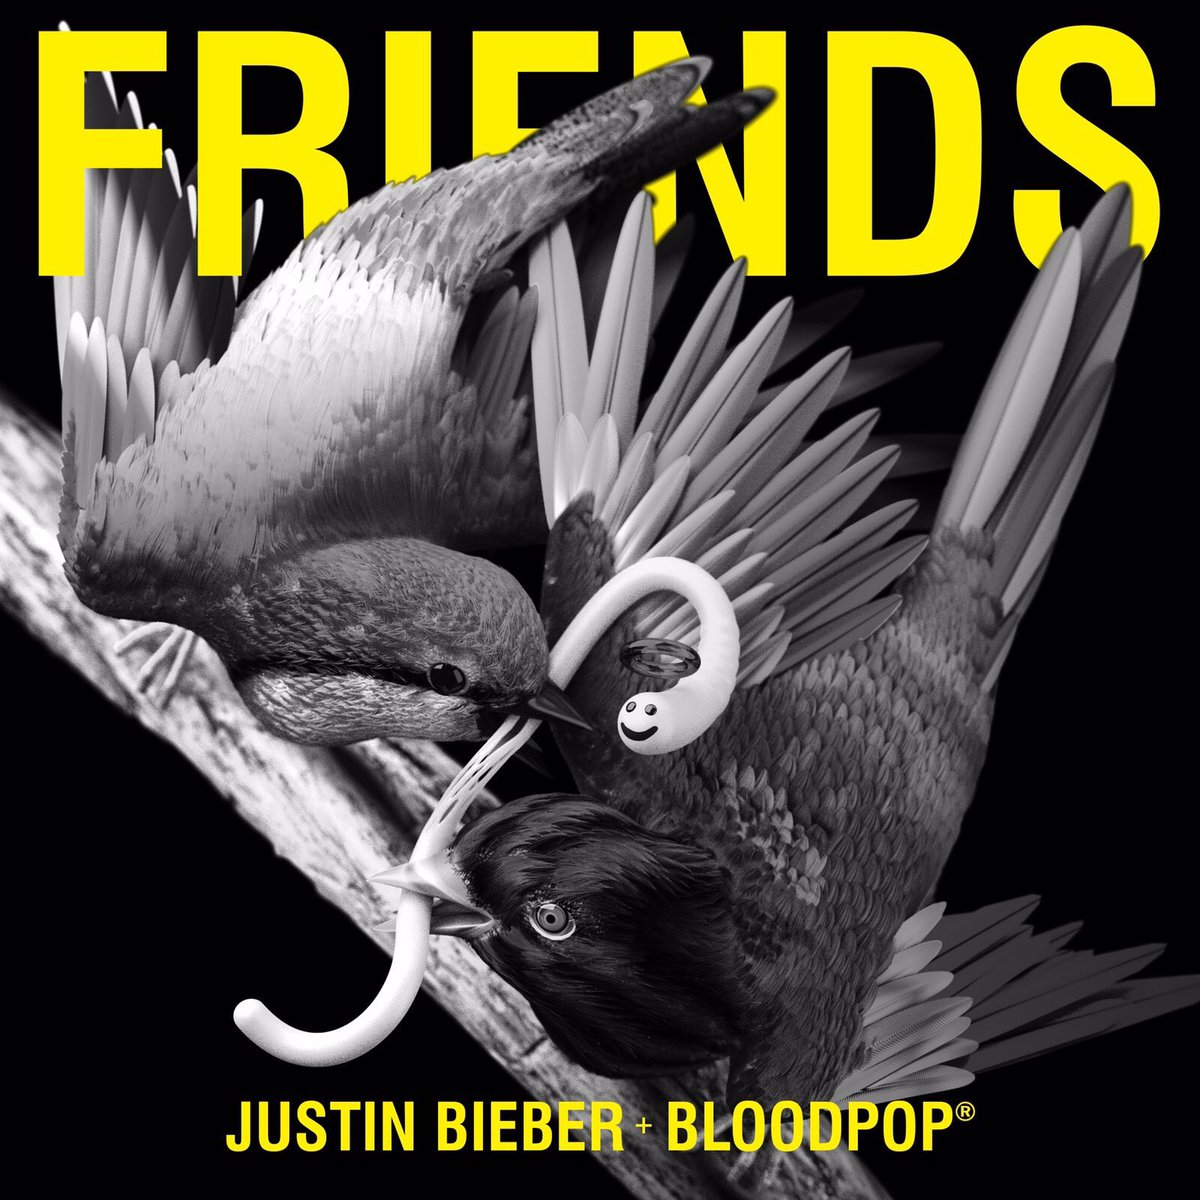 We're gifting #Friends by @justinbieber and @bloodpop to 10 people! RT...